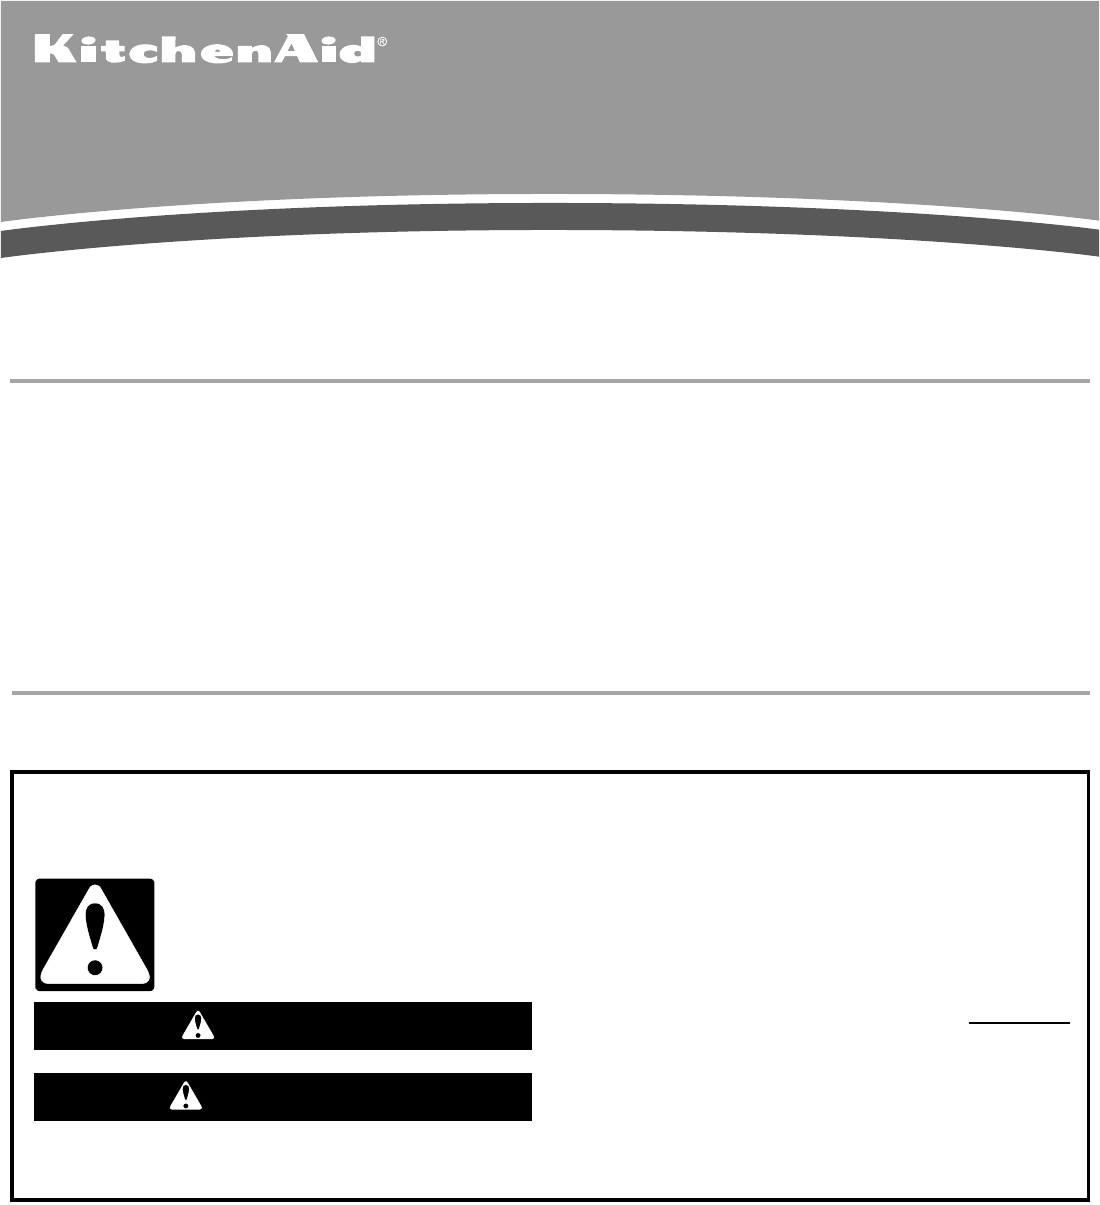 kitchenaid side by side refrigerator manual